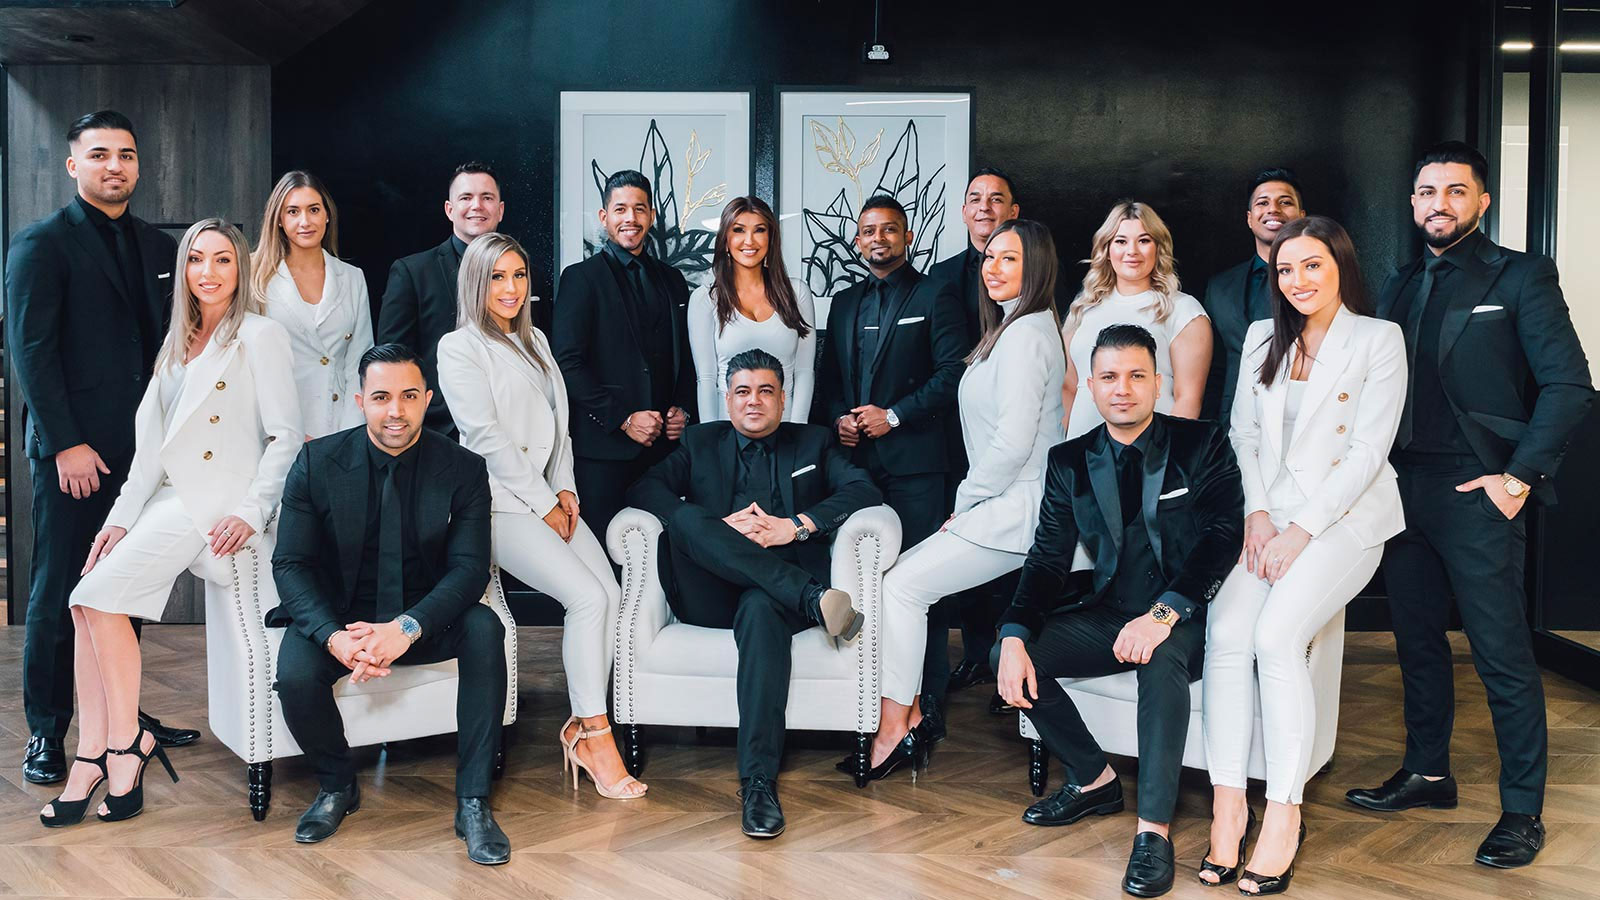 ▲ The team at Z Real Estate, celebrity agent Zed Nasheet's agency. That's him seated on the right.